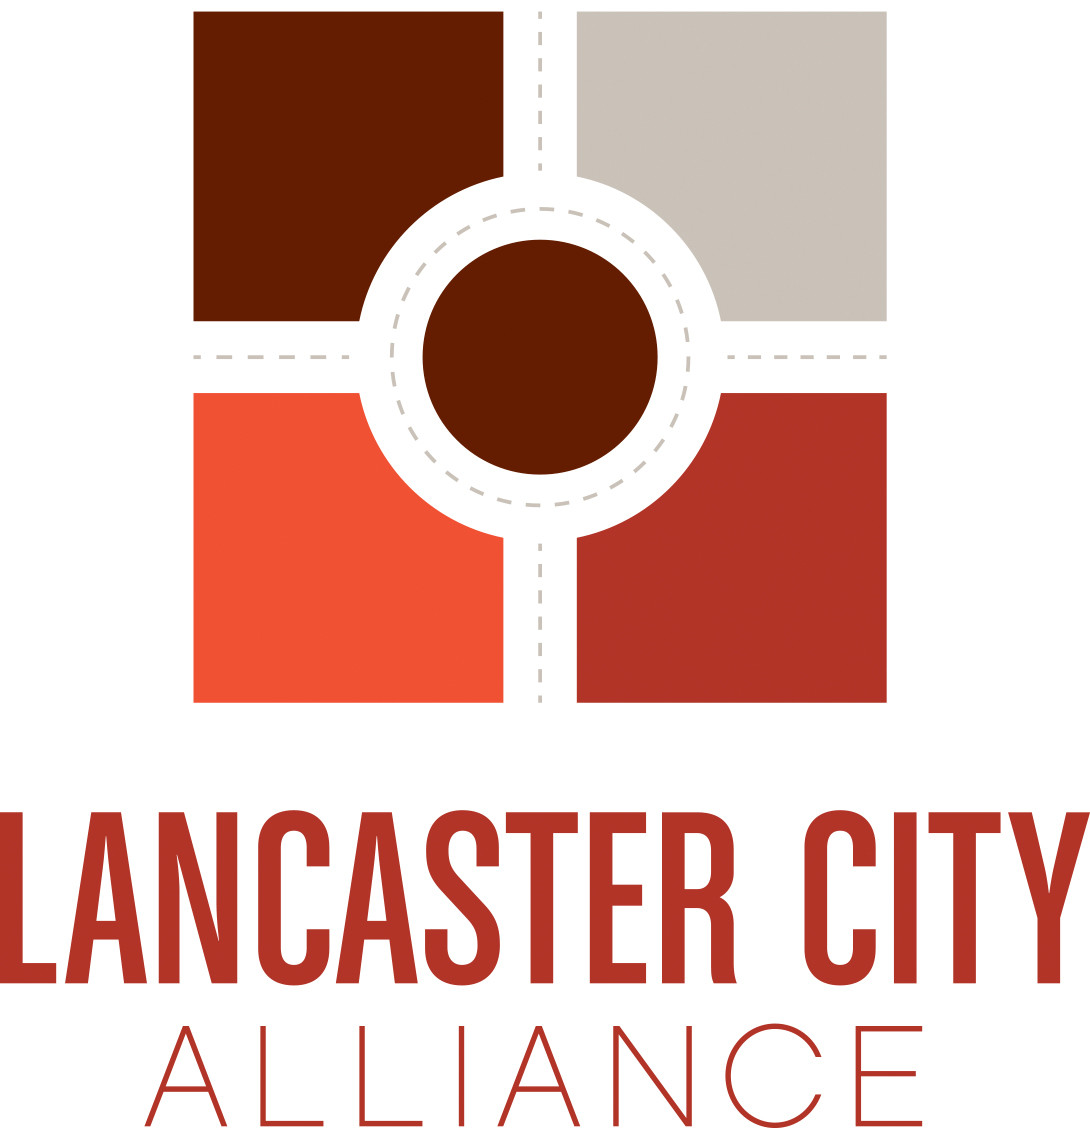 Lancaster City Alliance